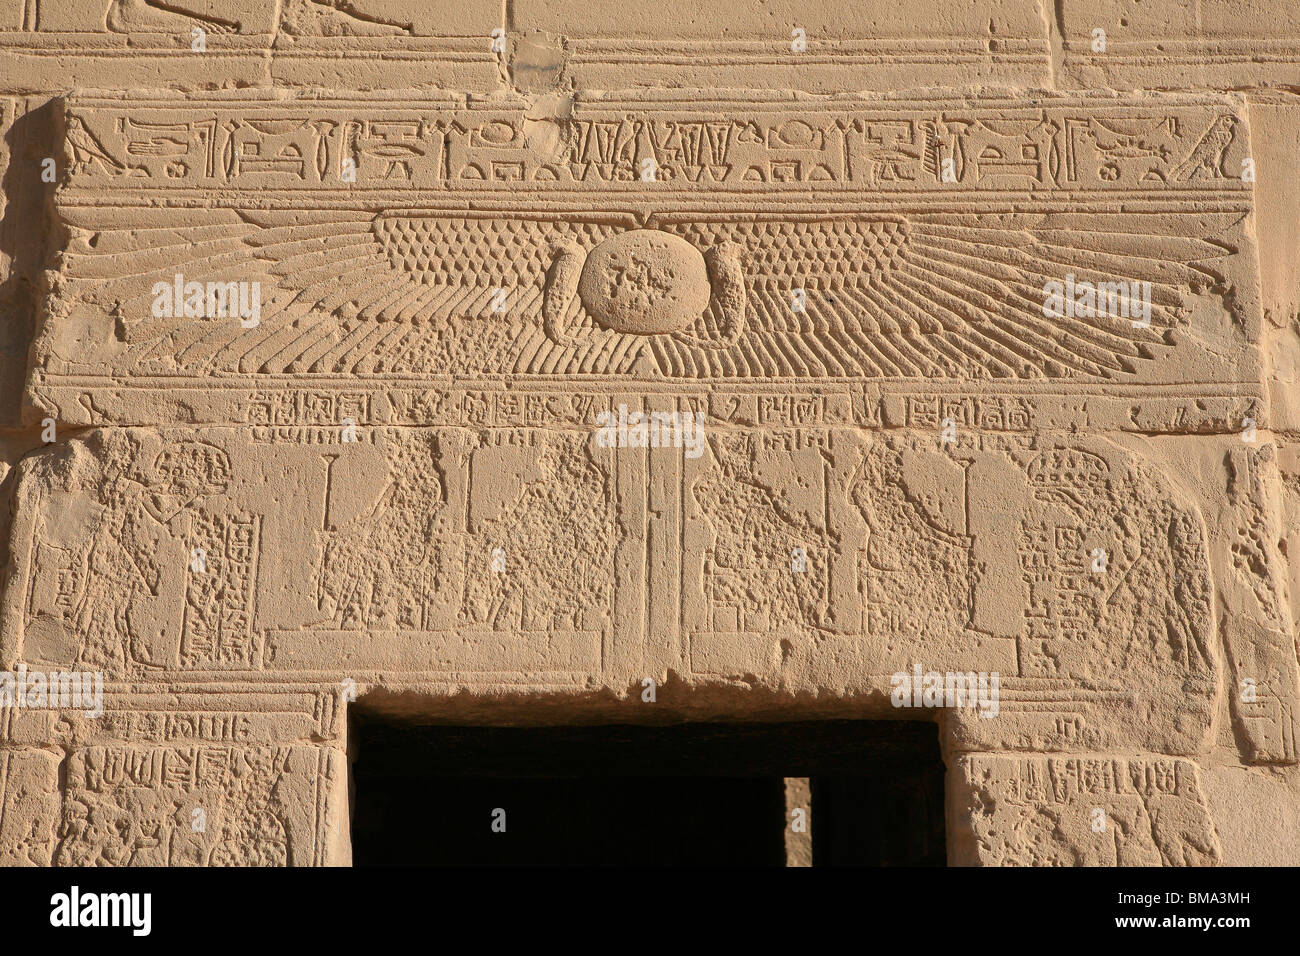 The wings of the Goddess Isis on the walls of the Temple of Philae in Egypt - Stock Image